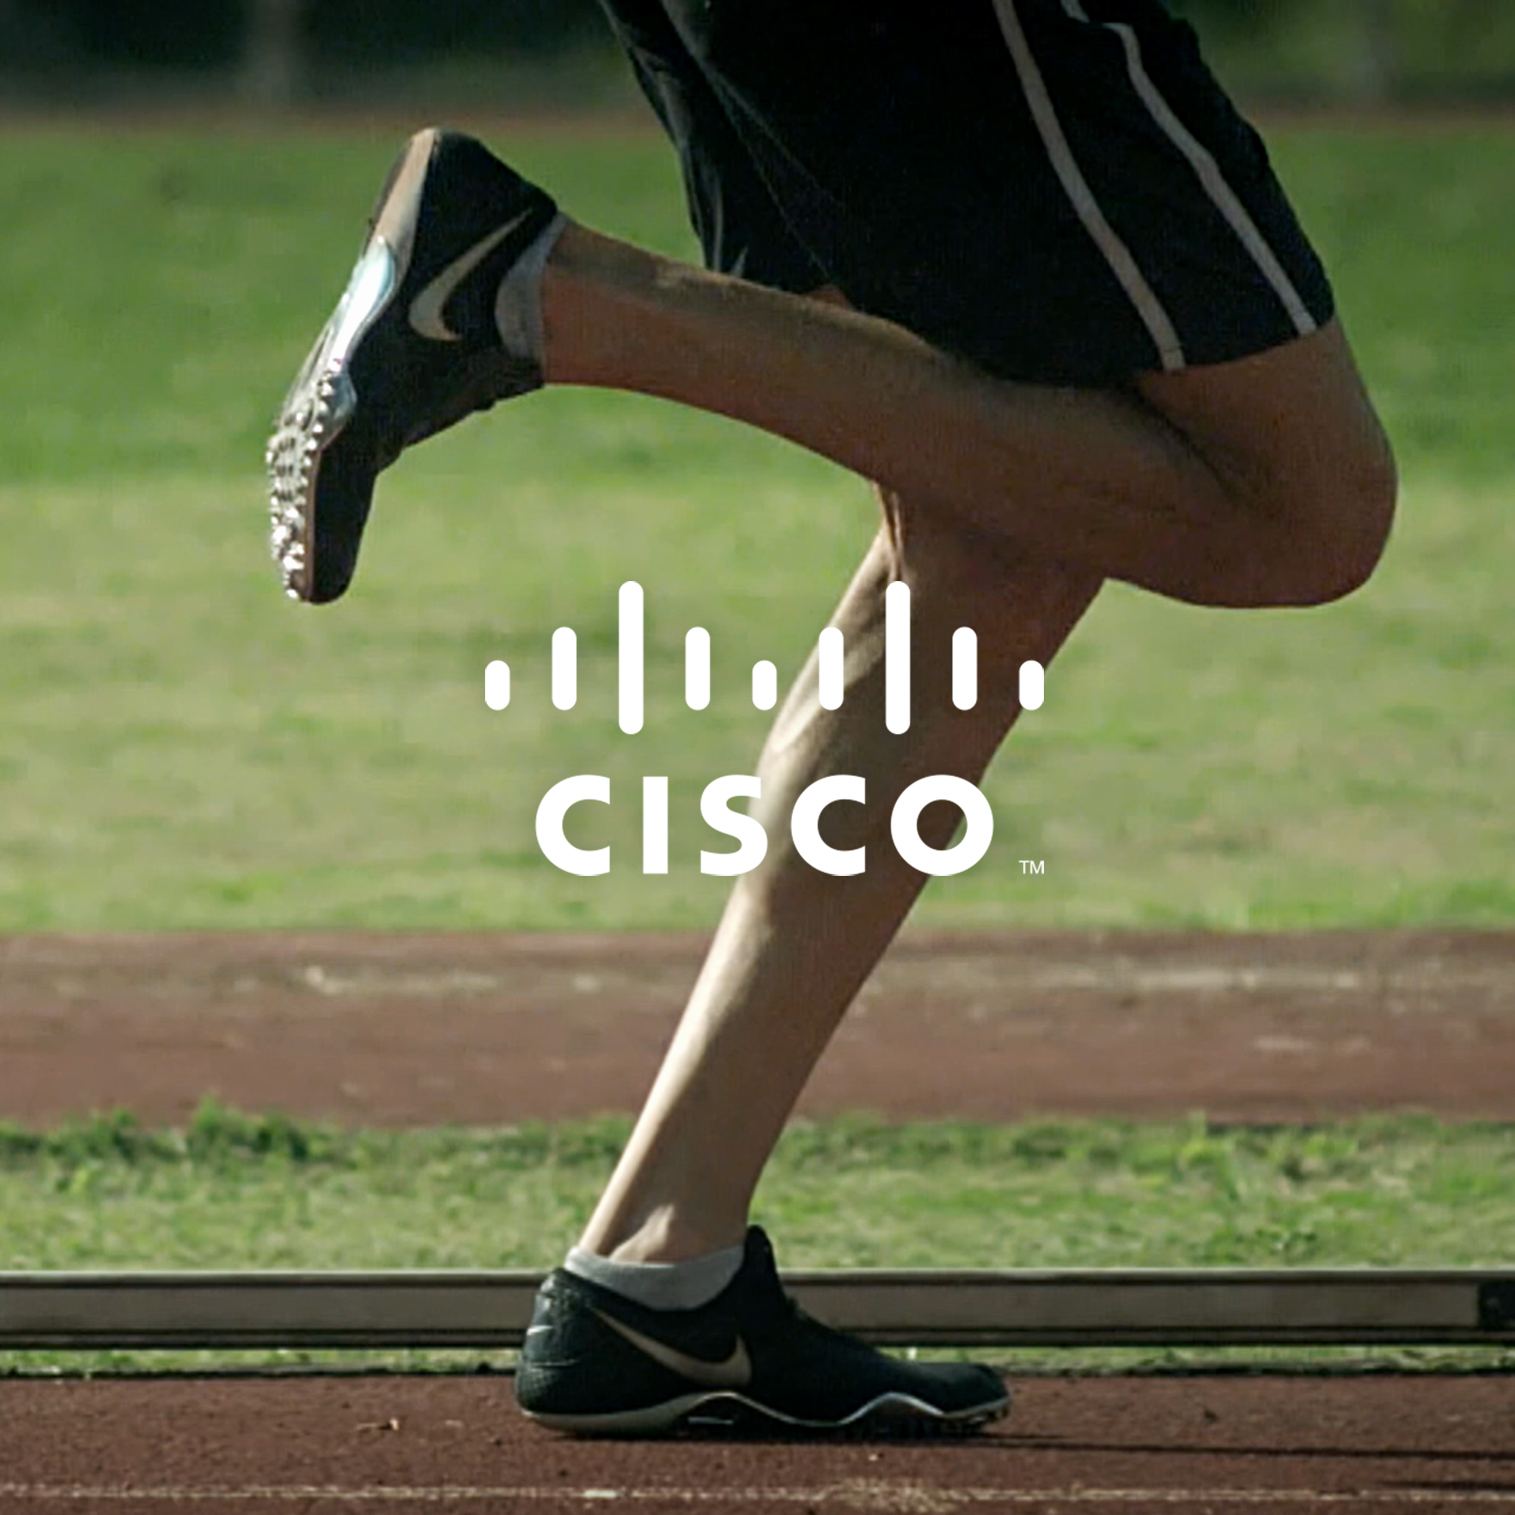 cisco_needs_retouching_footer_600px.jpg